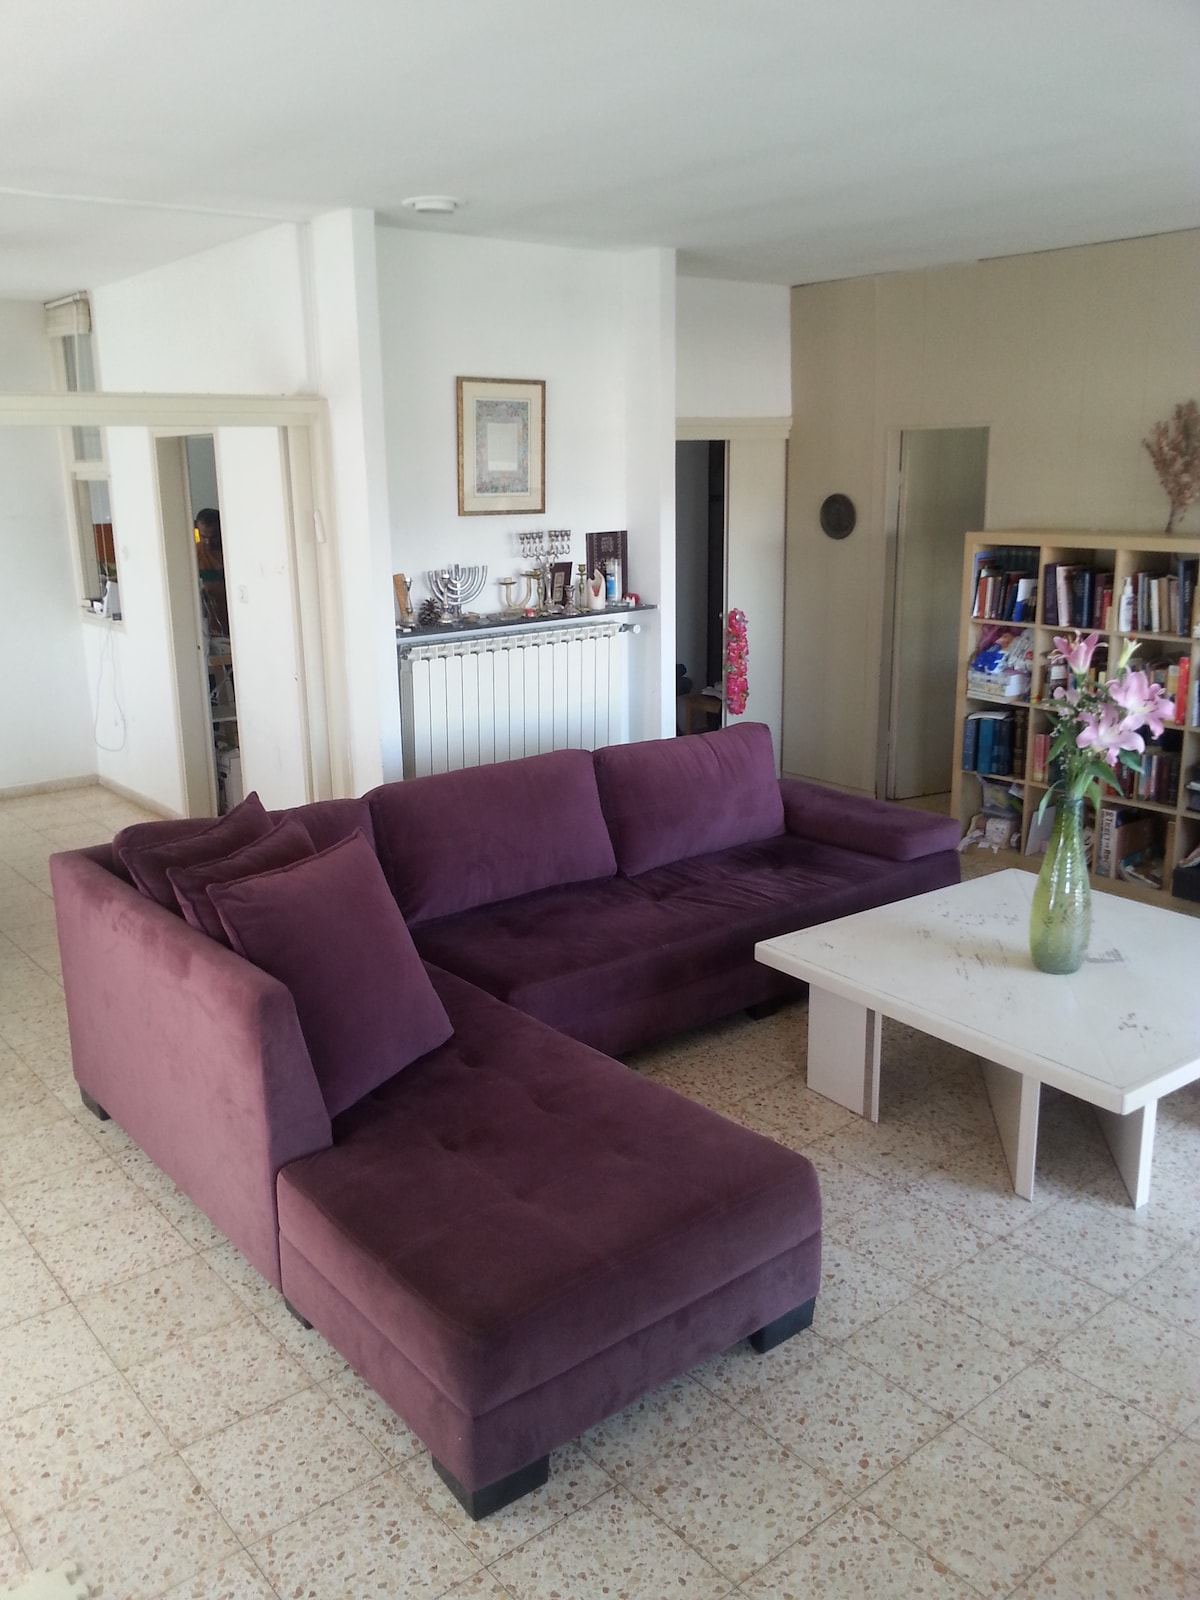 4 BR Central,Sunny, Family Size Apt